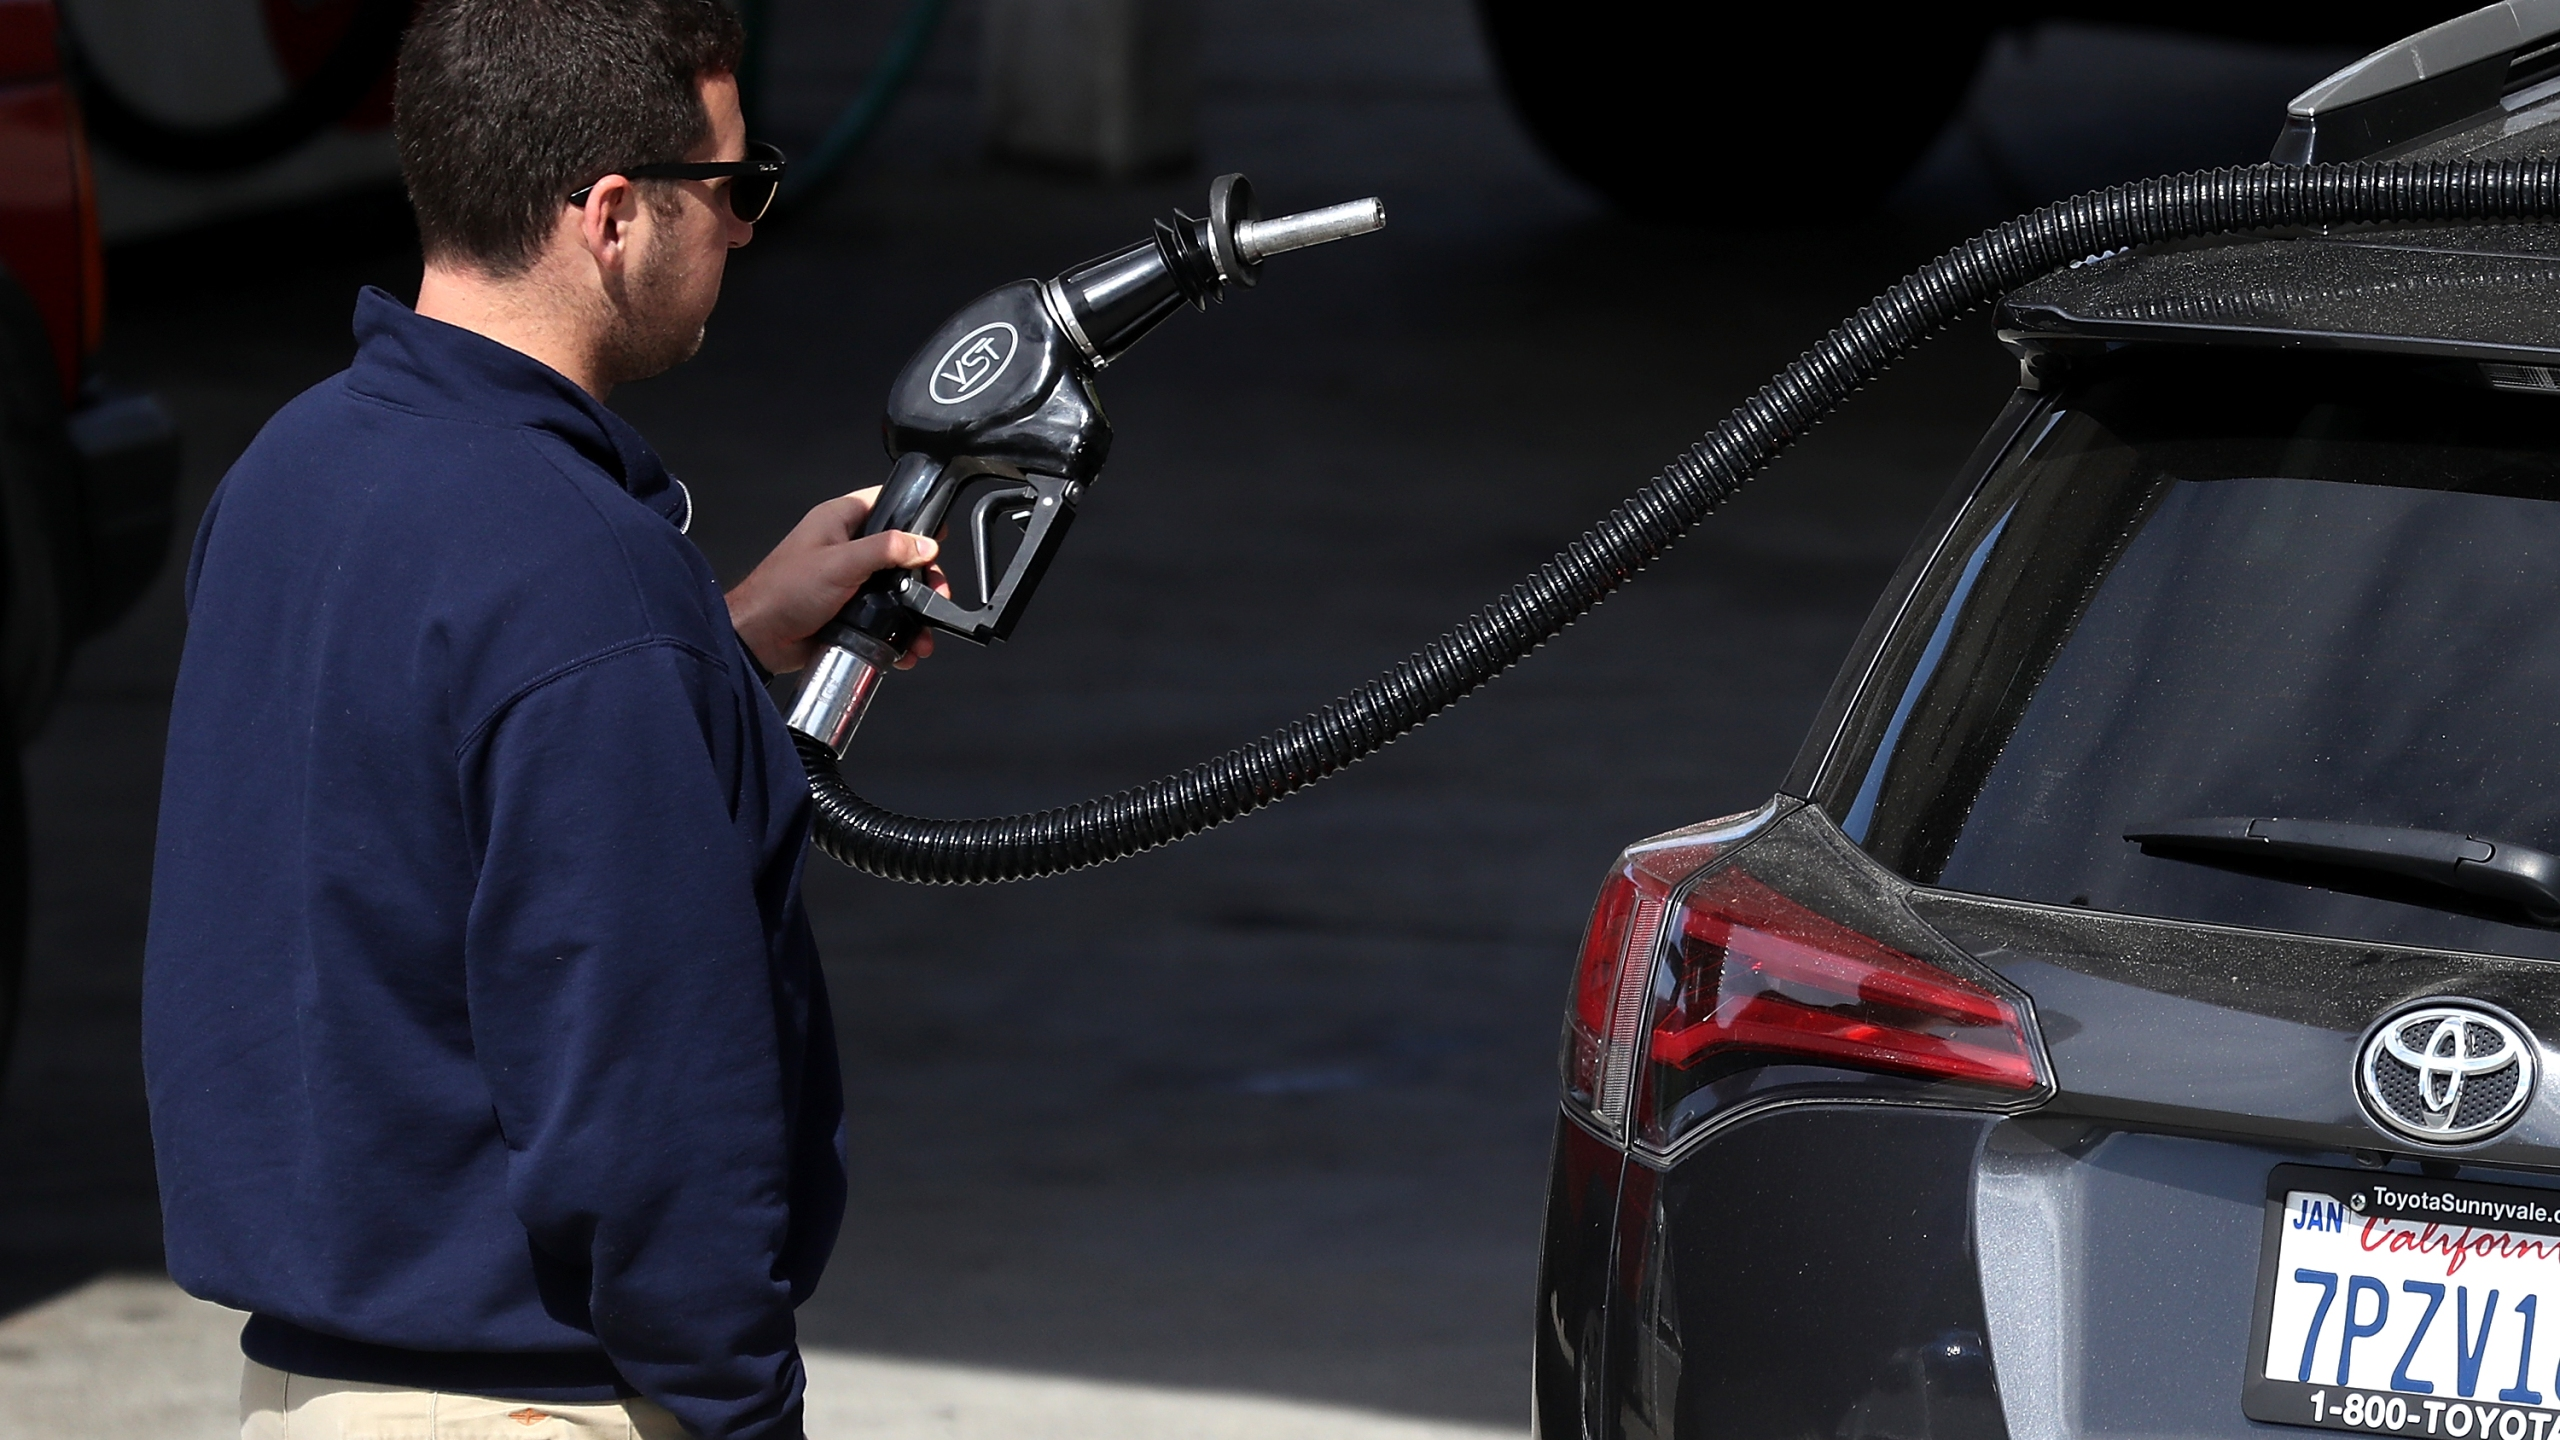 A customer prepares to pump gasoline into his car at a gas station on May 10, 2017, in San Anselmo. (Credit: Justin Sullivan/Getty Images)